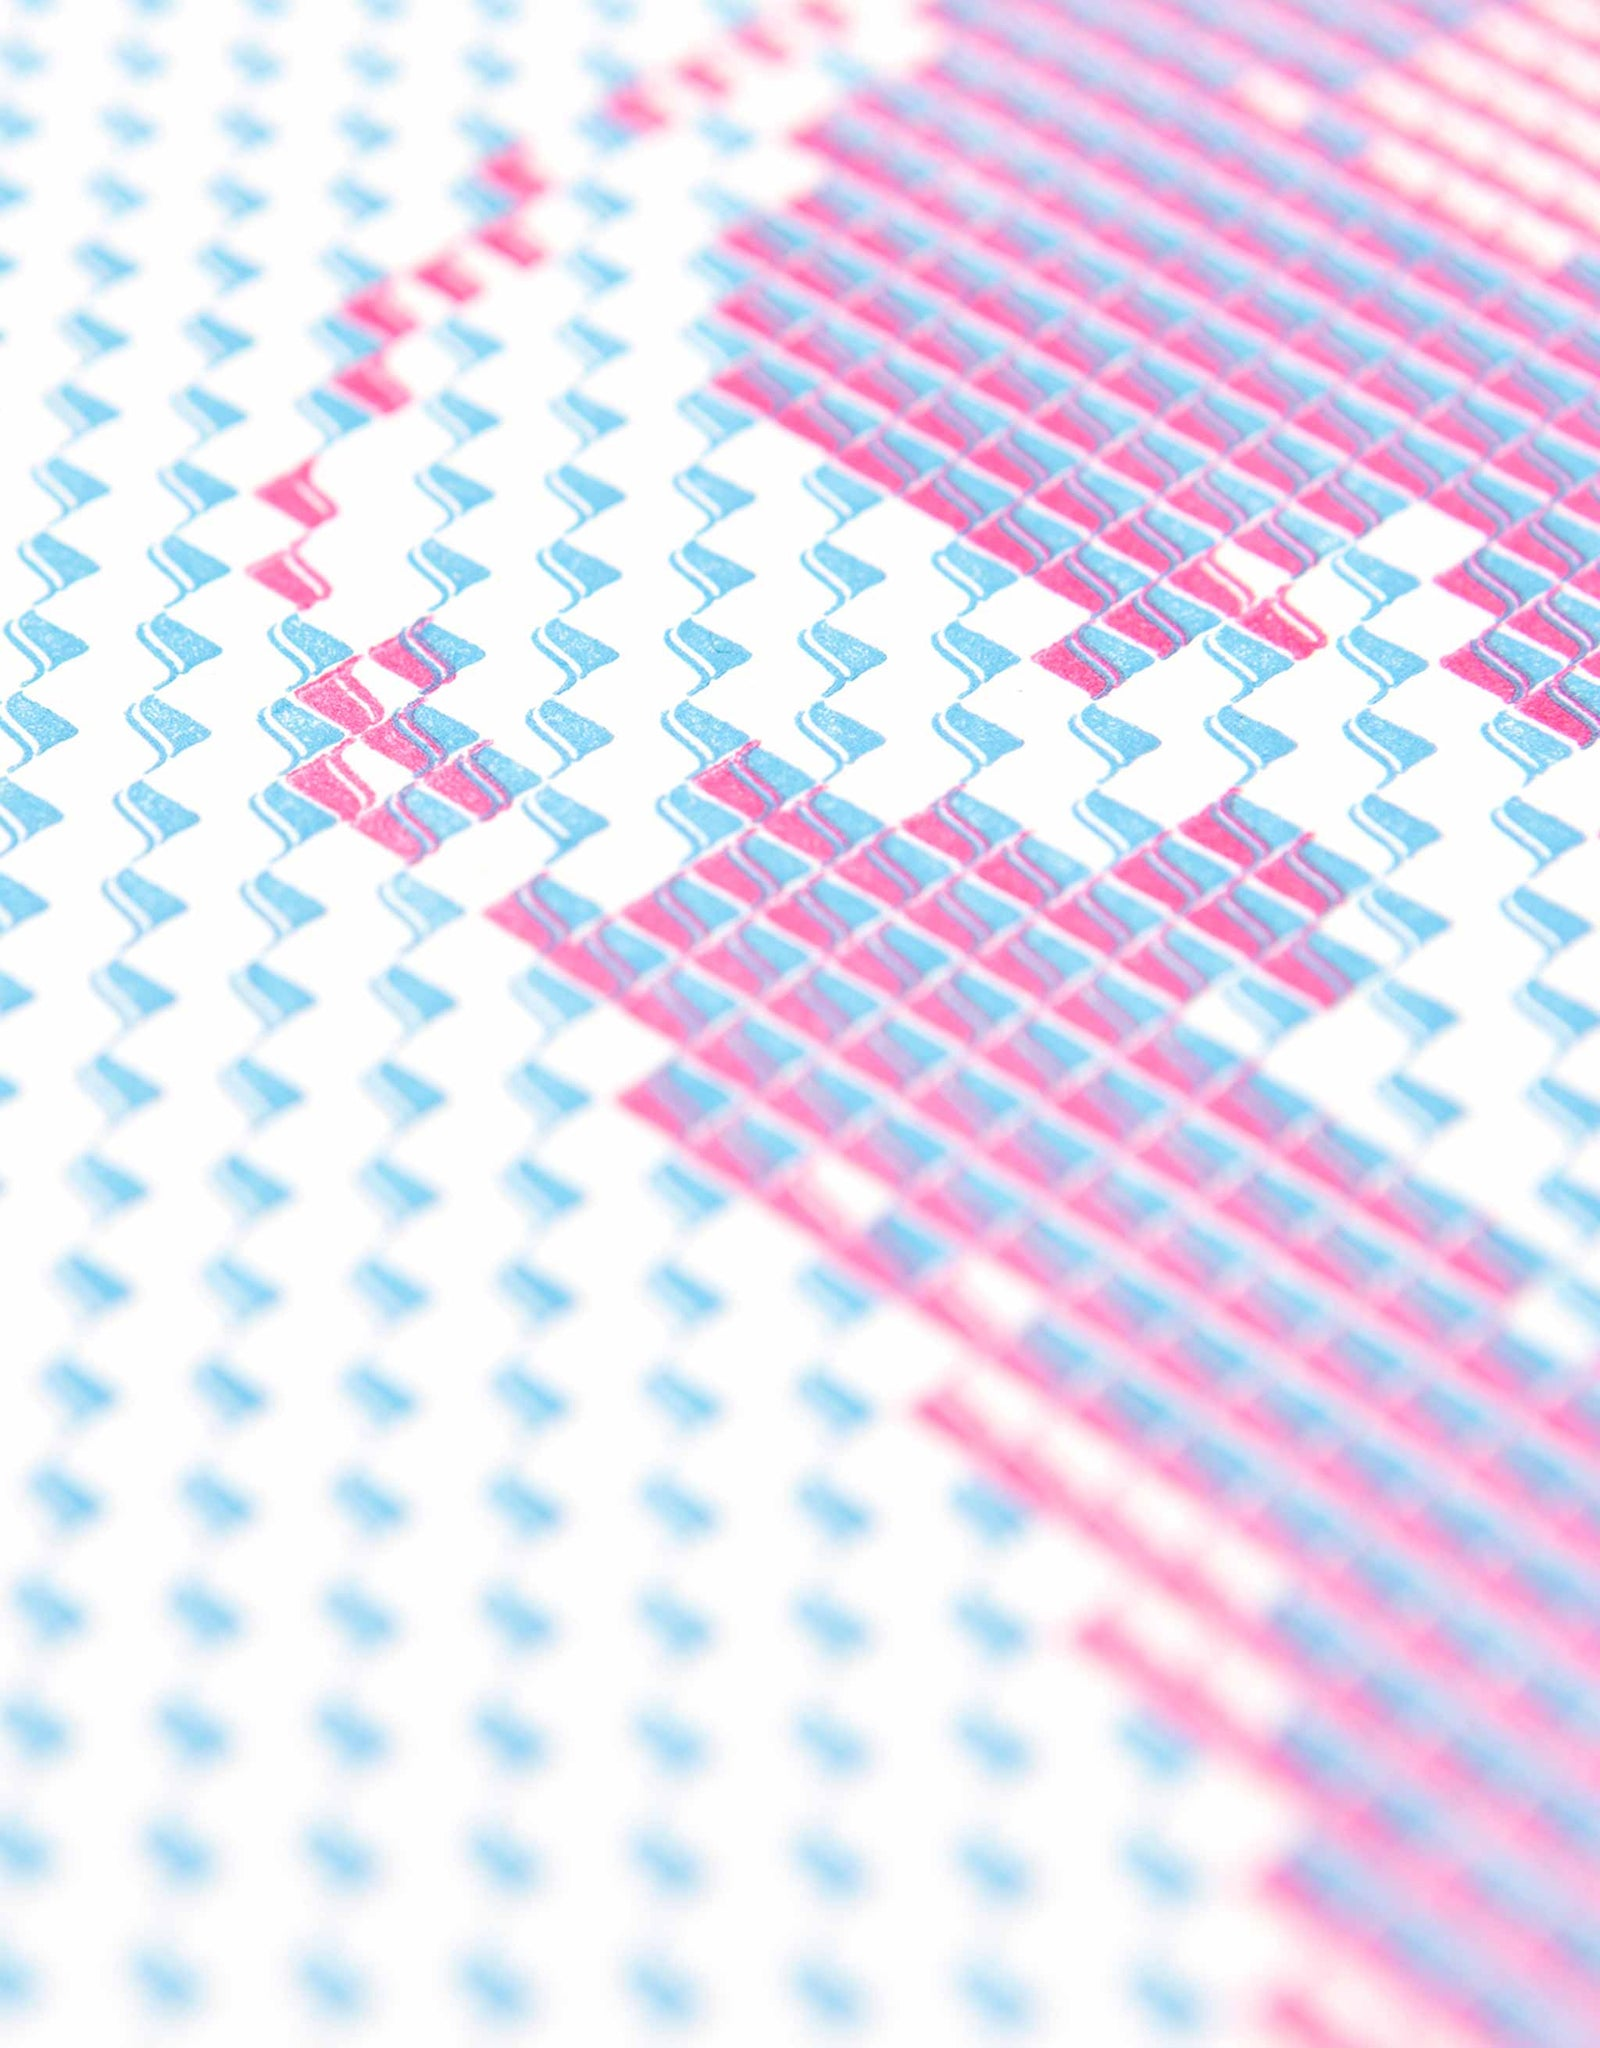 Detail of Below the Sea Letterpress Print. Cyan and magenta Kaba ornaments.